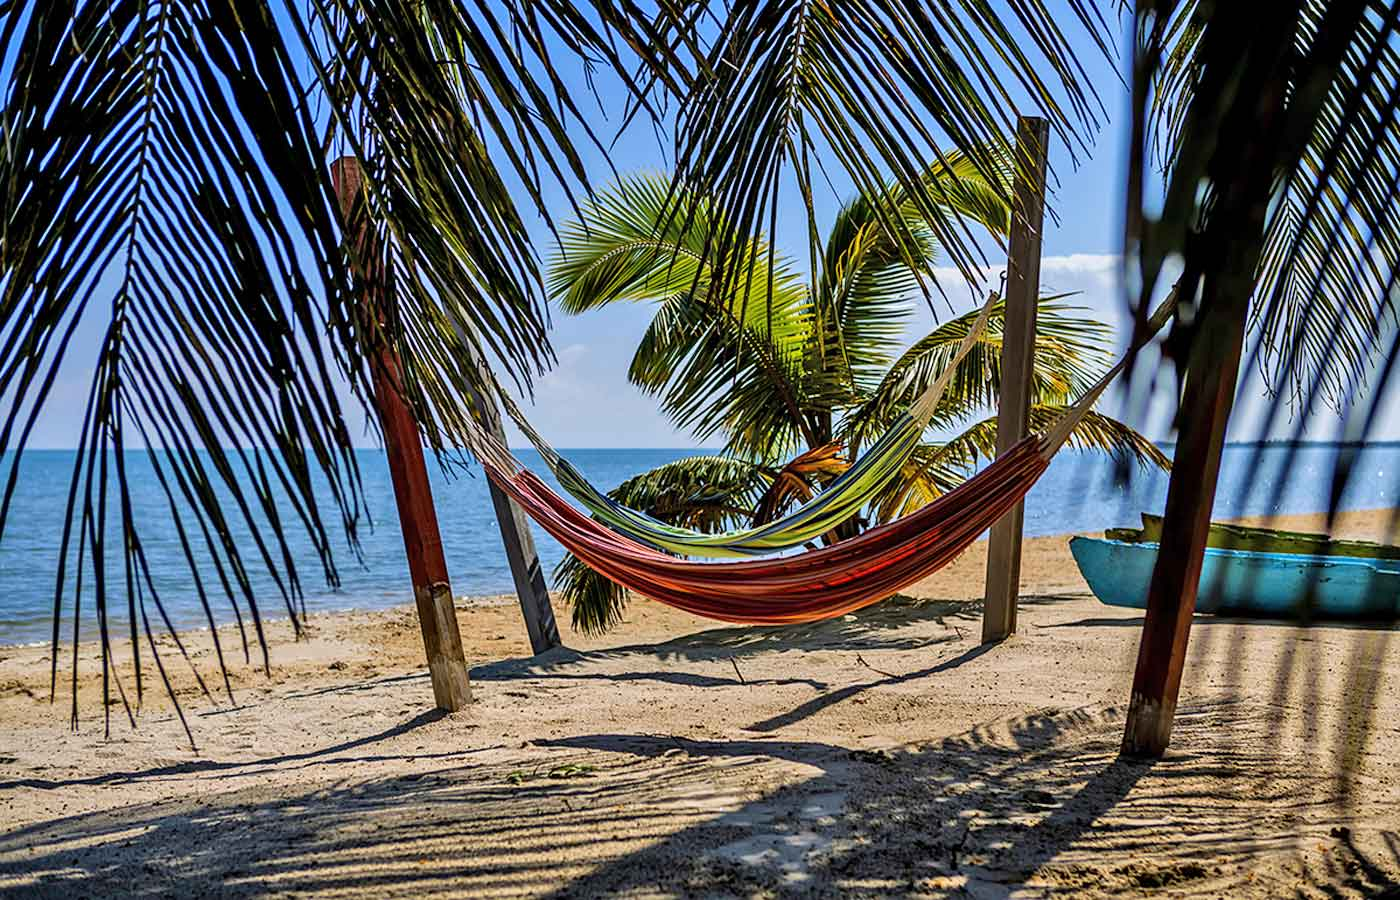 Hopkins Bay Resort, Belize, luxury Belize, luxury holidays to Belize, tailor-made holiday to Belize